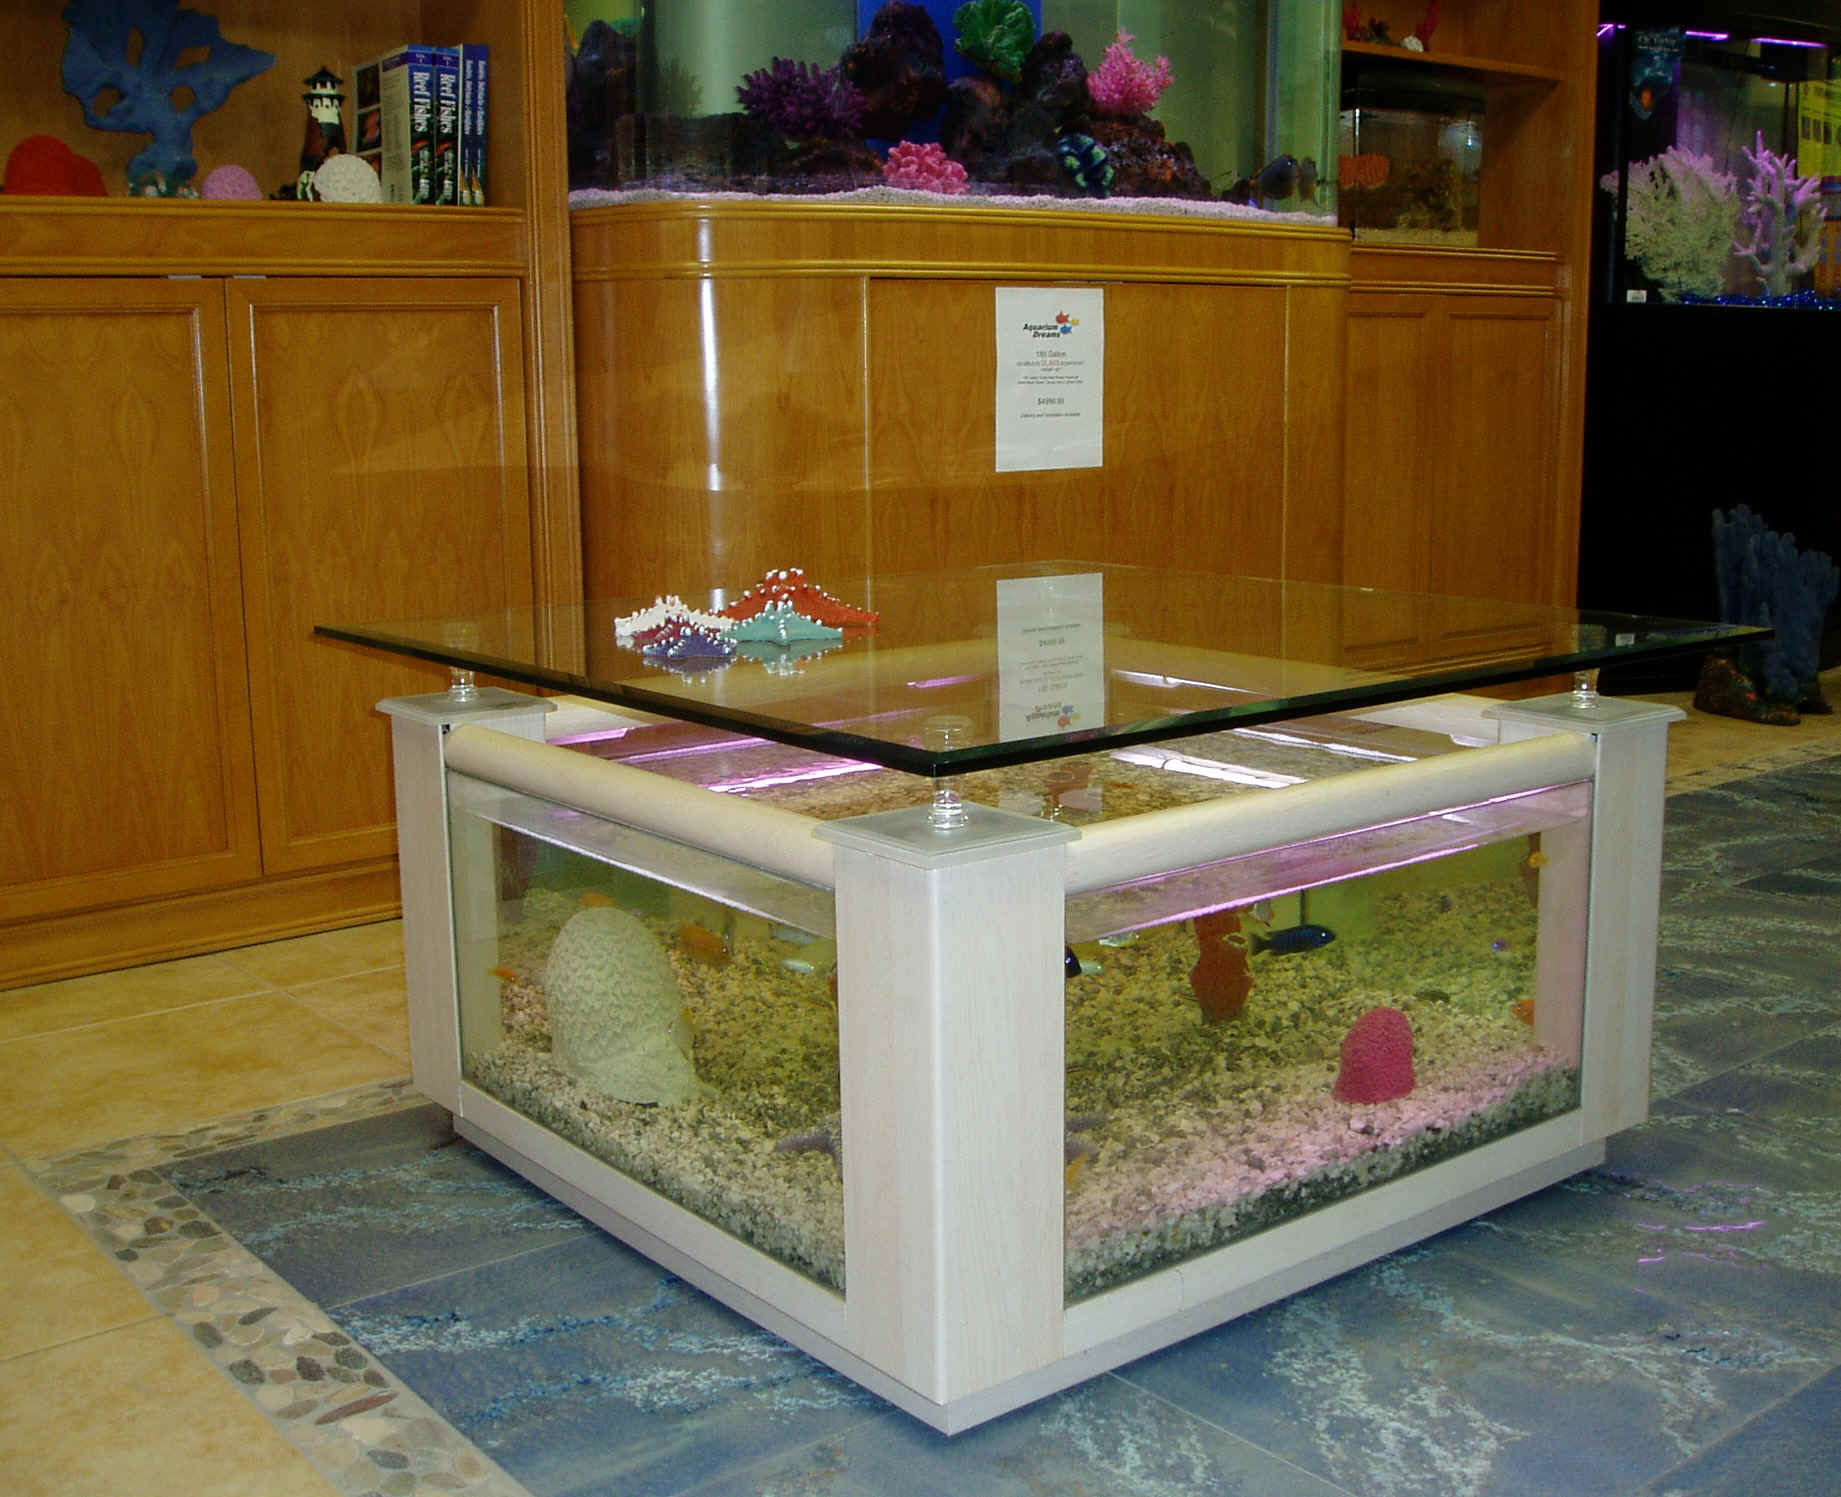 Fish aquarium for sale in karachi - Fish Aquarium Karachi